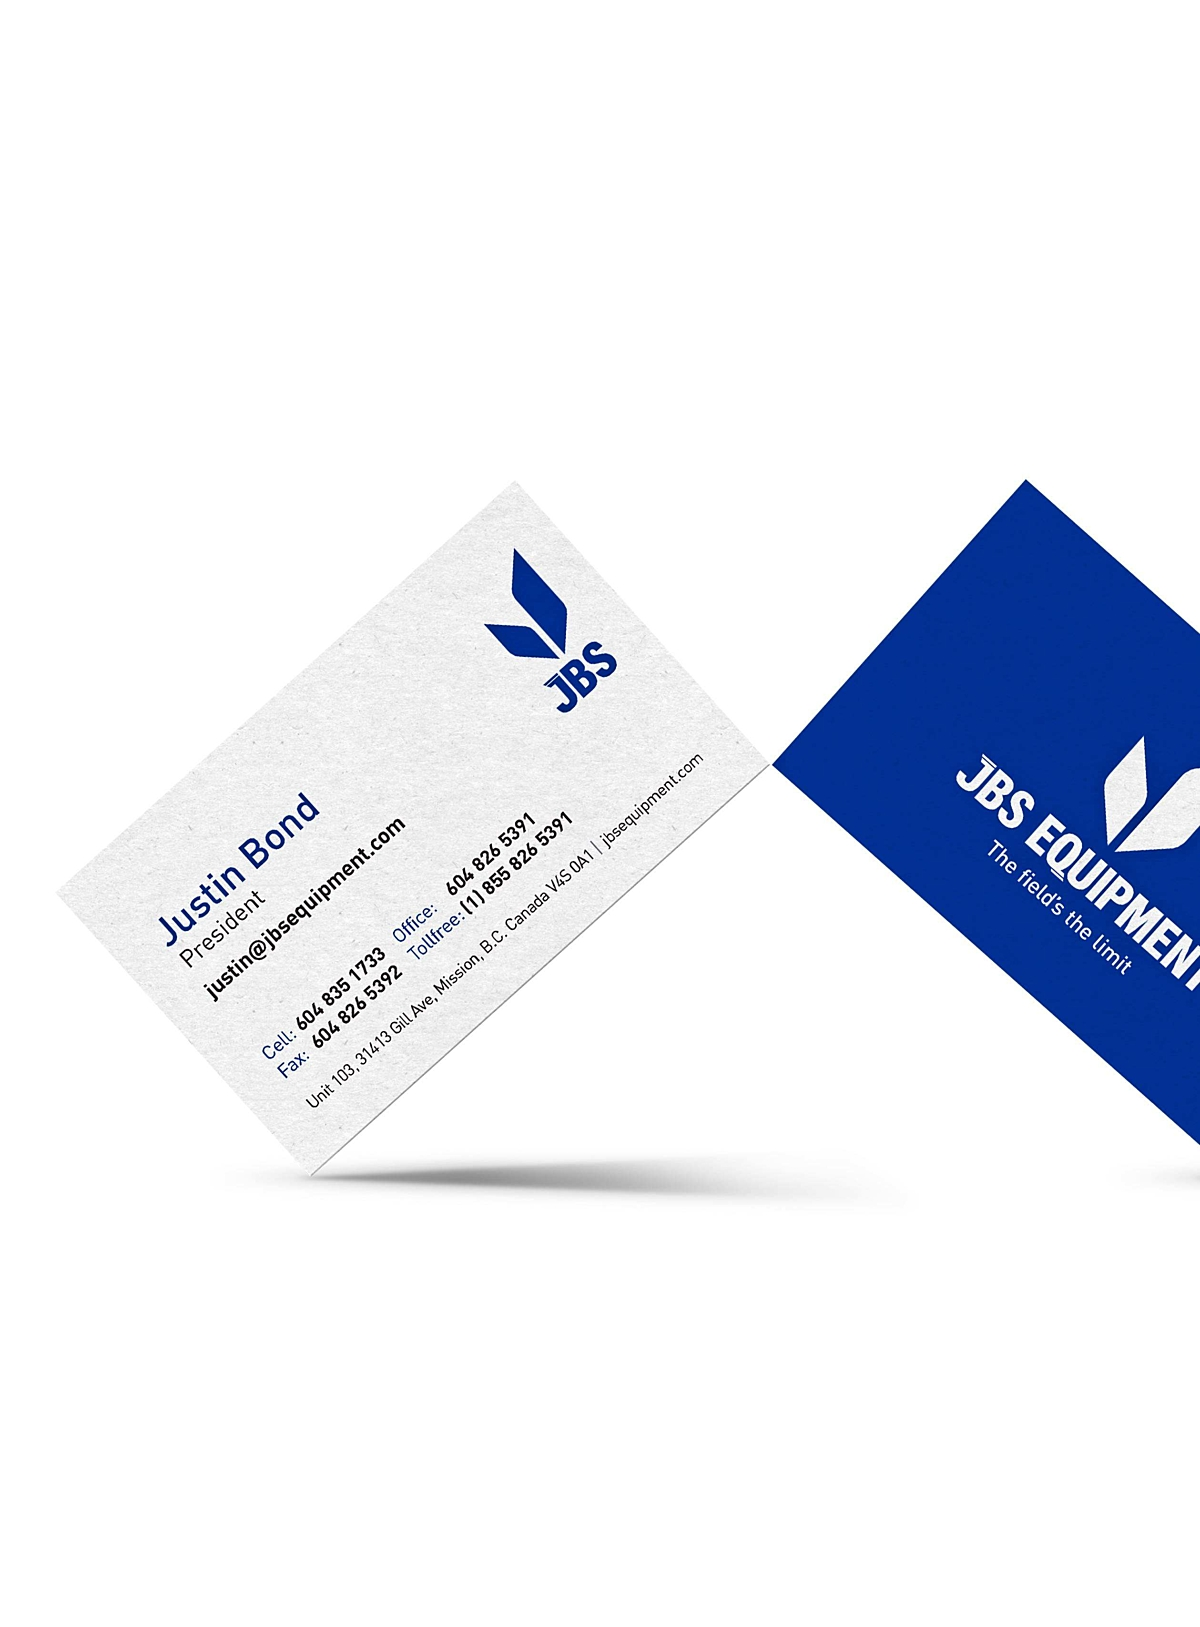 JBS Equipment business cards front and back displaying Justin Bond information